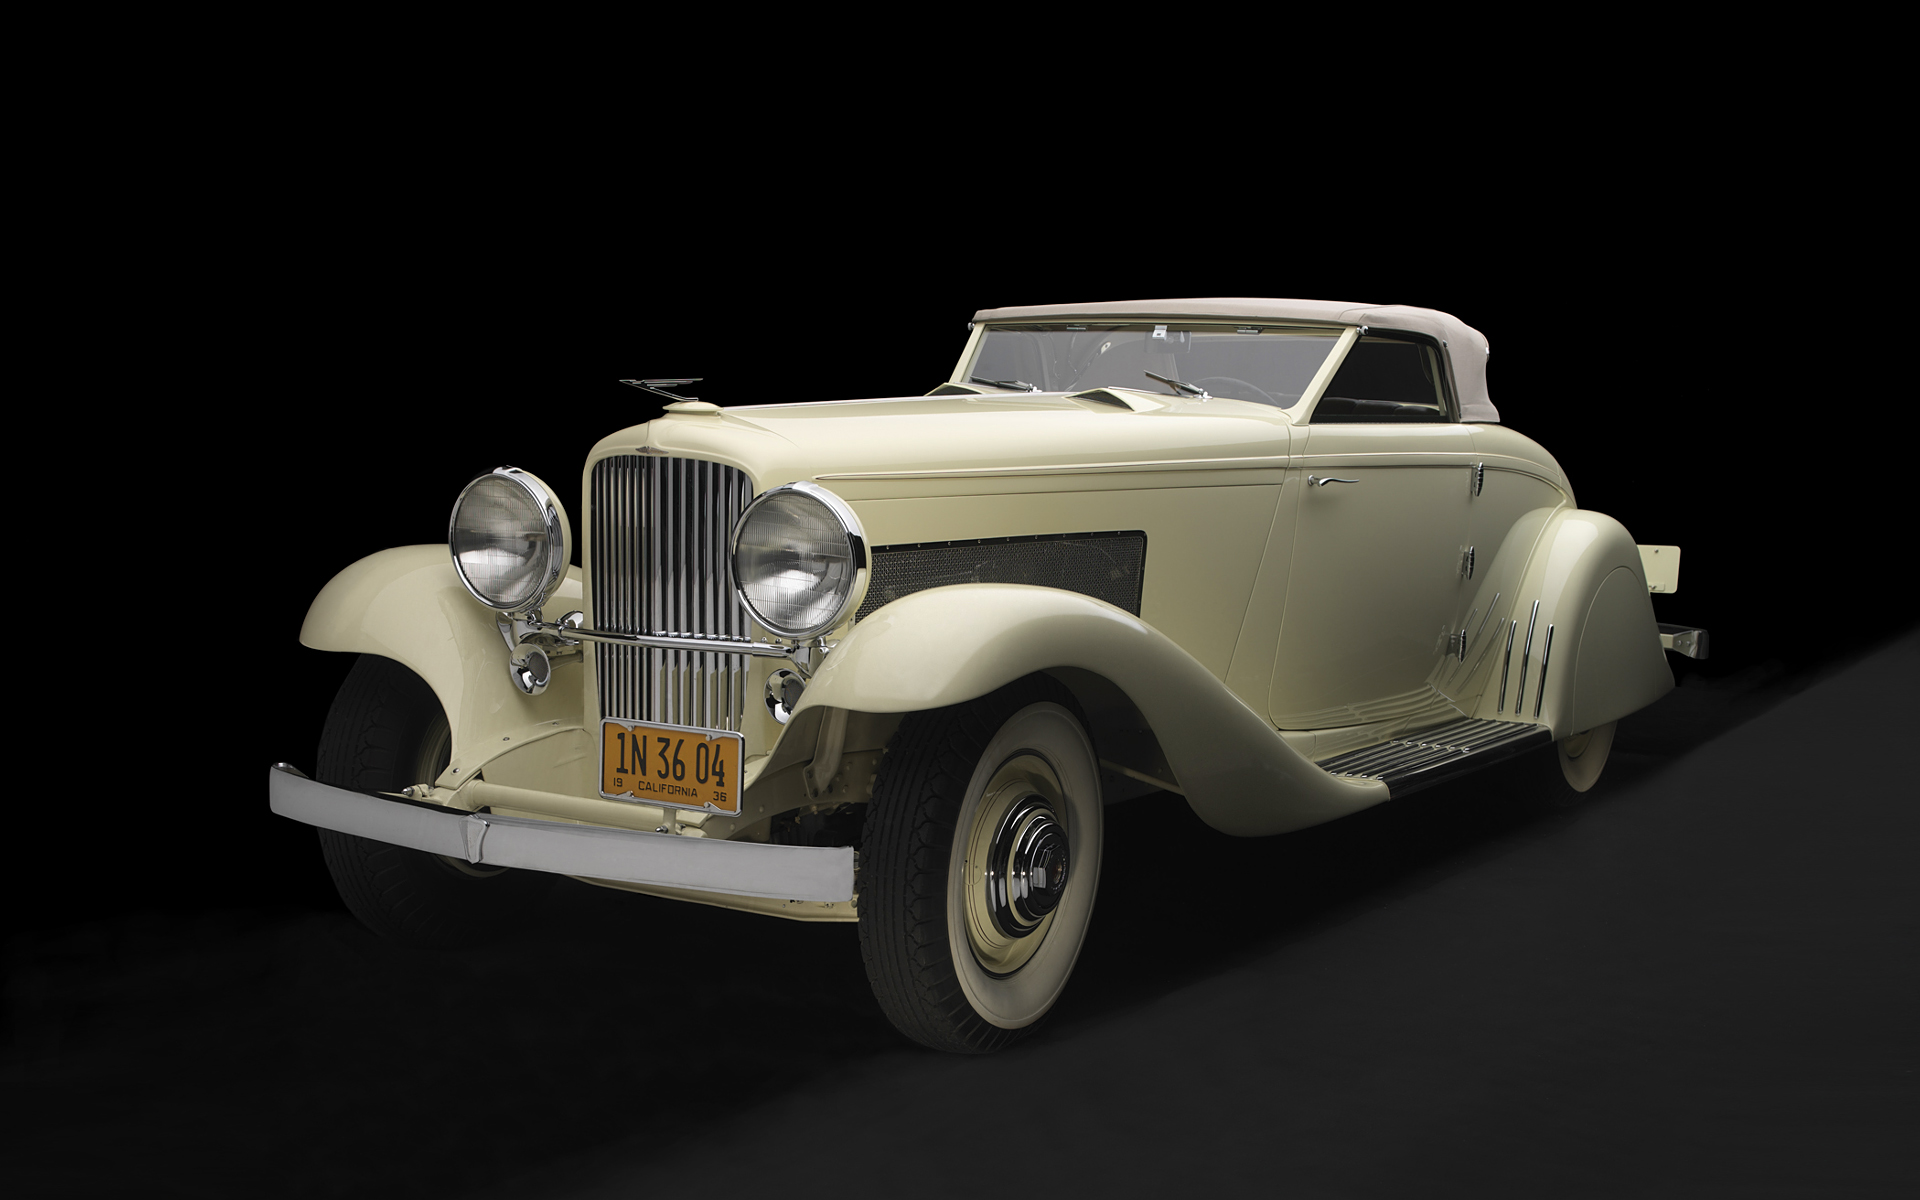 duesenberg vintage car wallpapers - photo #20